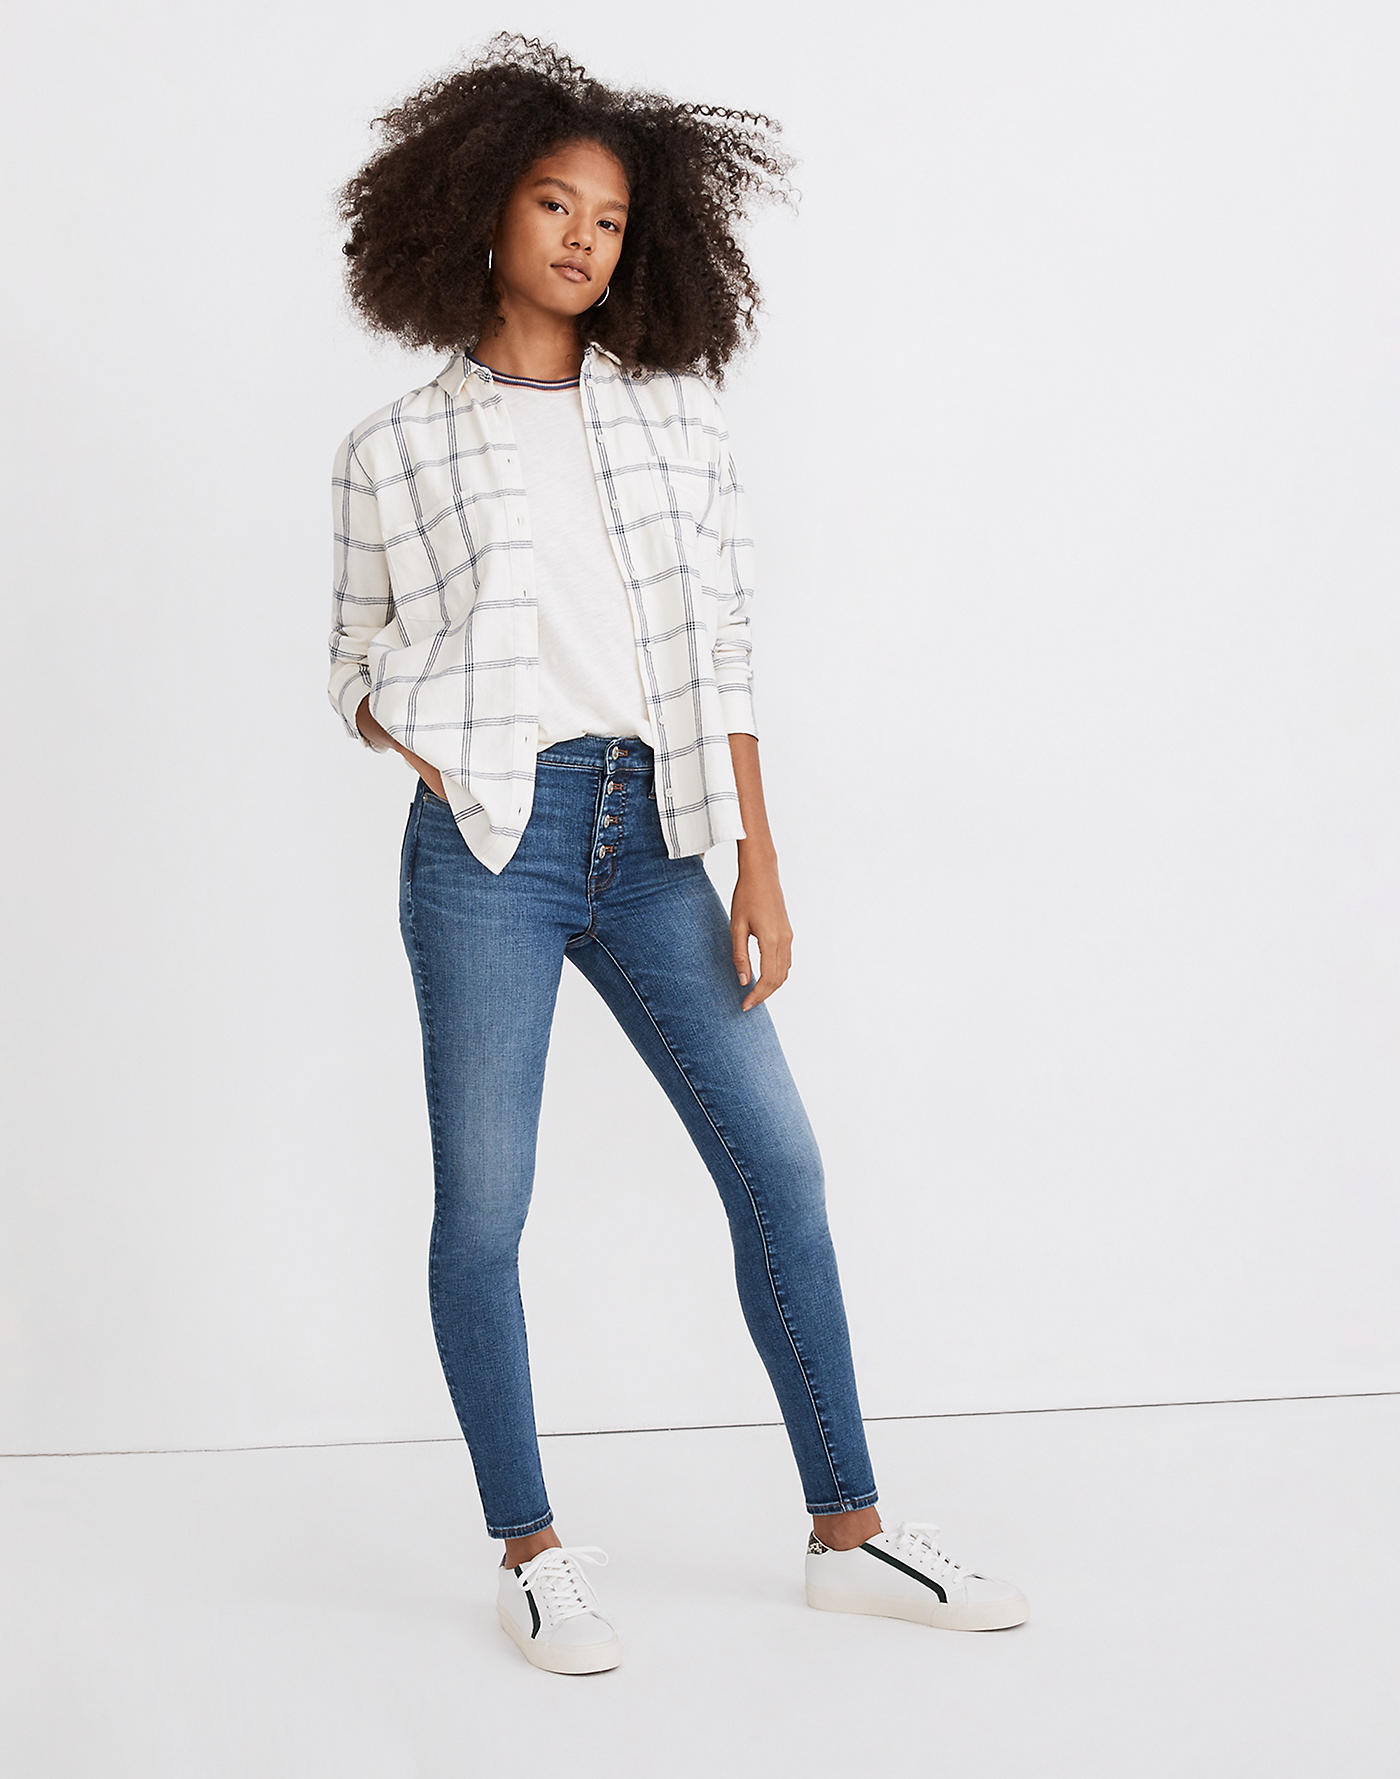 Madewell 9 Mid-Rise Skinny Jeans in Payson Wash: Button-Front Edition